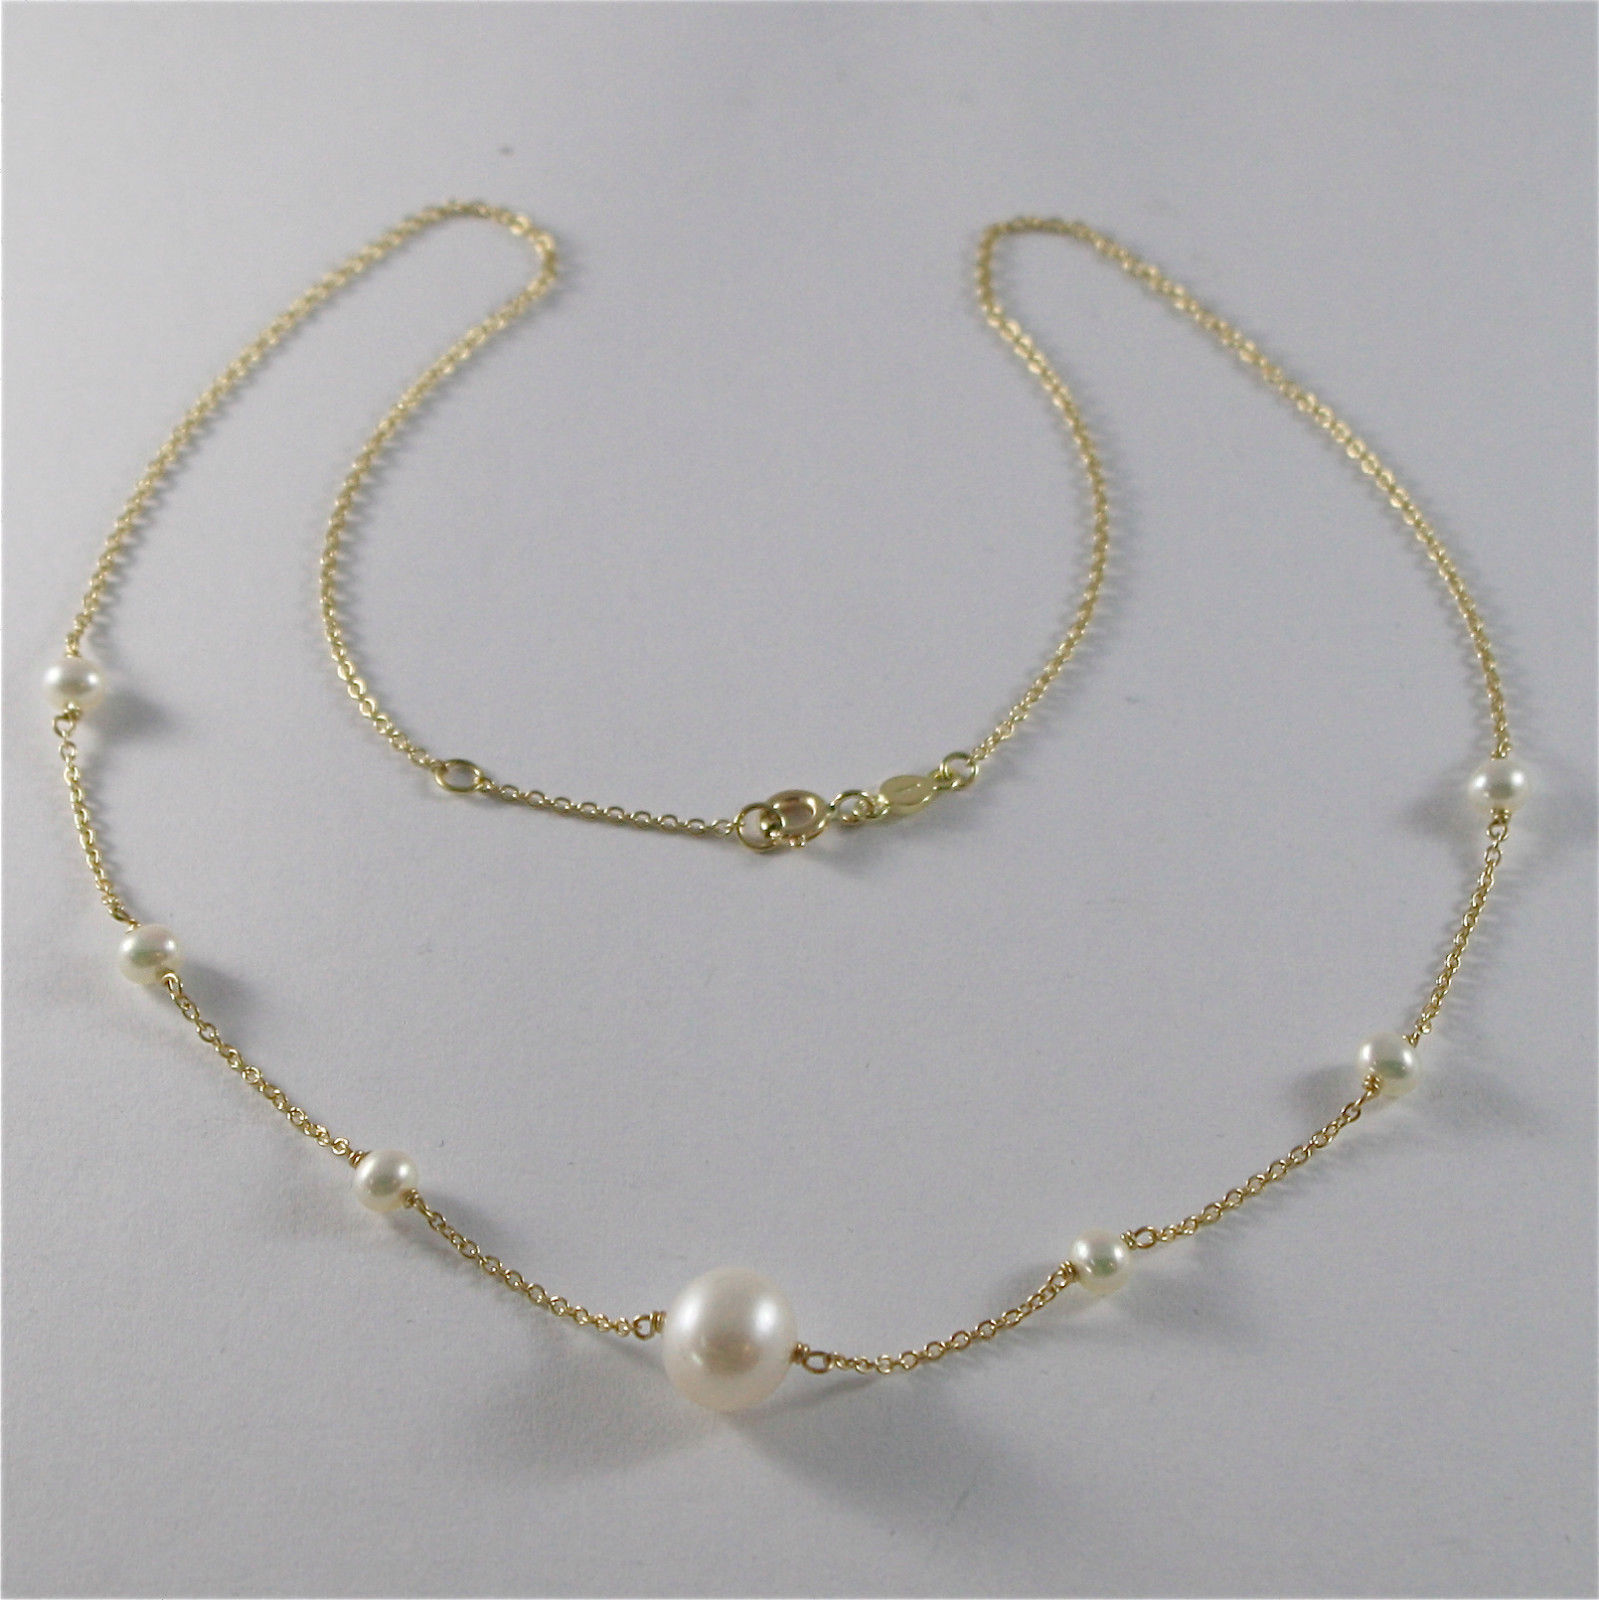 18K YELLO GOLD NECKLACE WITH ROUND WHITE FRESHWATER PEARLS MADE IN ITALY 390 USD